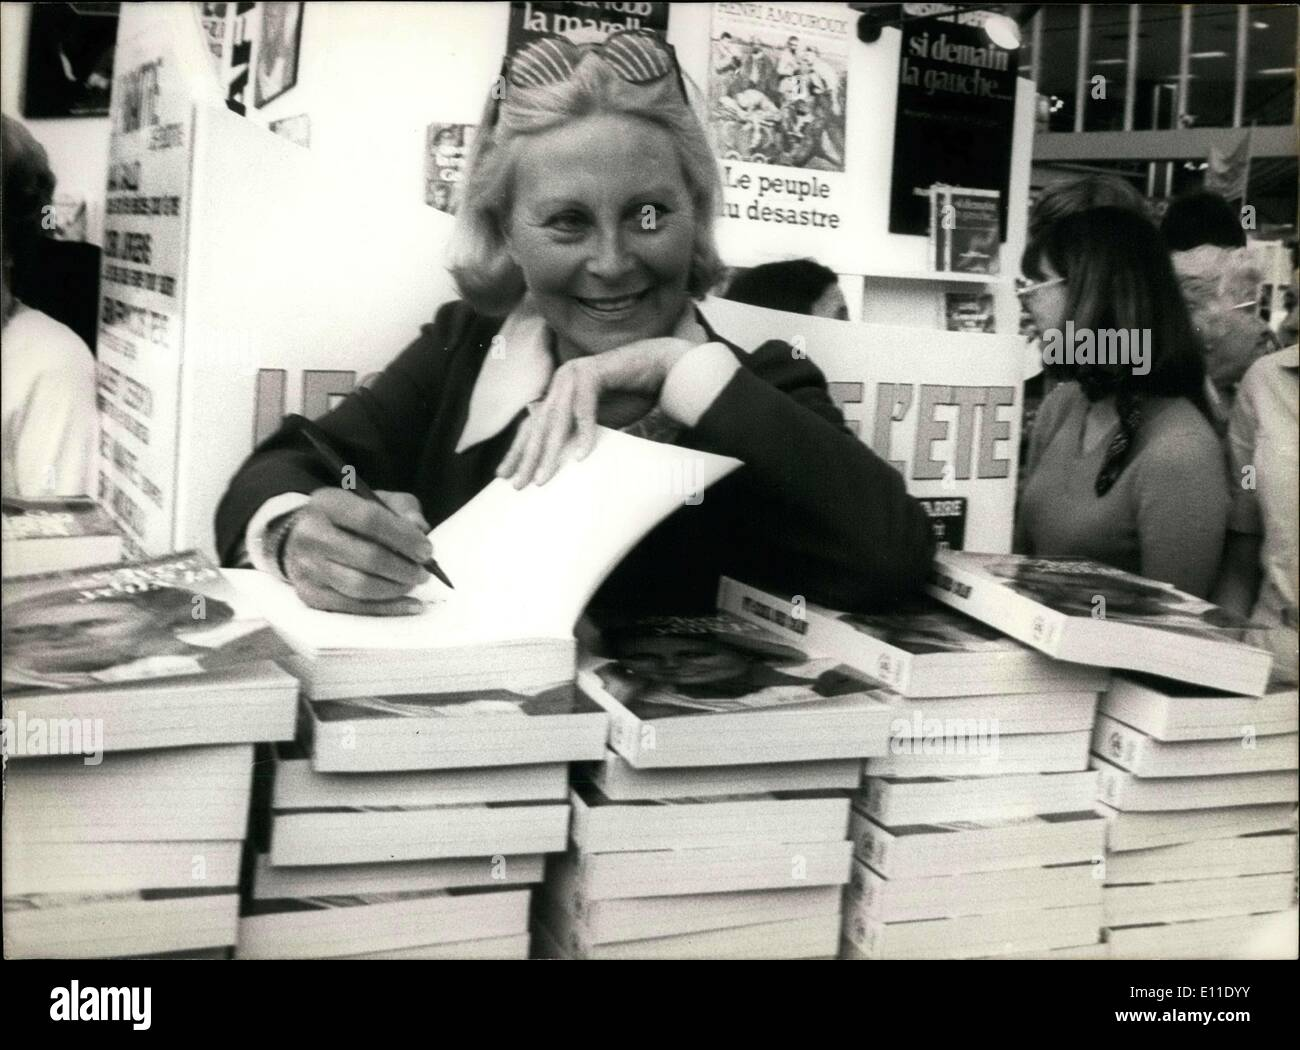 May 11, 1977 - She was at the International Book Festival in Nice. - Stock Image